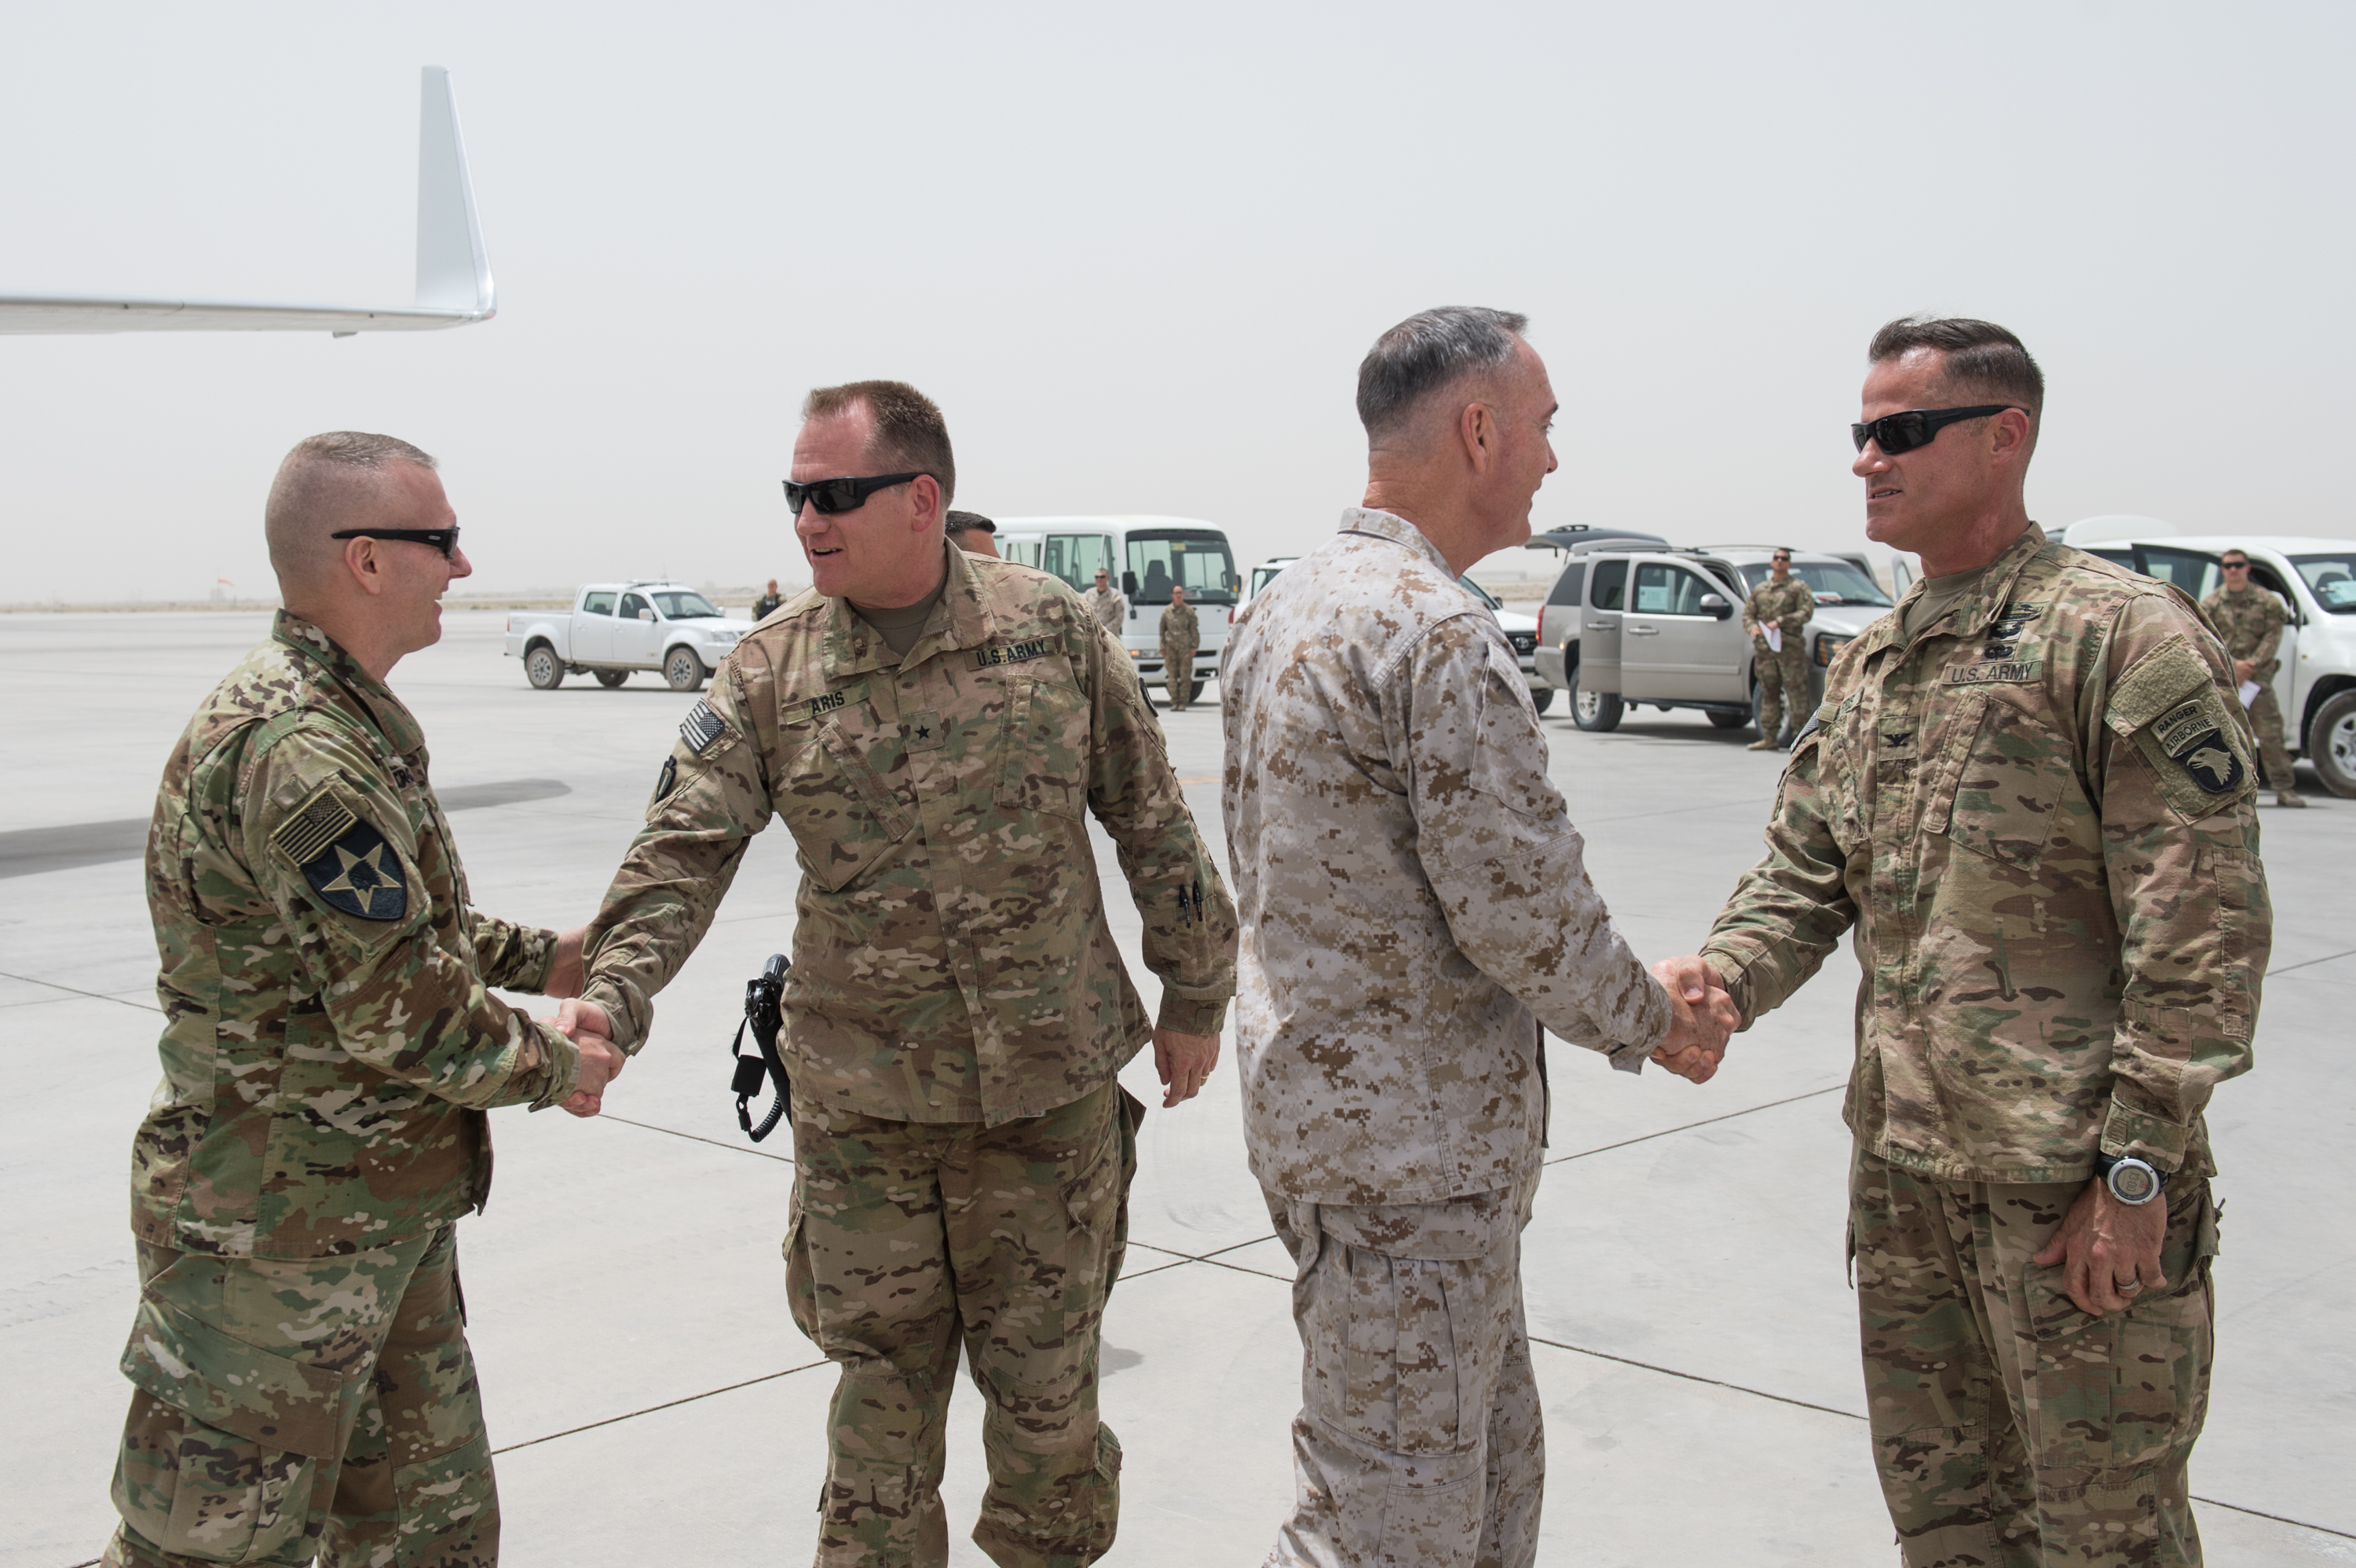 Army Command Sgt. Maj. John W. Troxell, senior enlisted adviser to the chairman of the Joint Chiefs of Staff, and Marine Corps Gen. Joseph F. Dunford, Jr., then-chairman of the Joint Chiefs of Staff, greet Army leaders on the ground in Afghanistan in 2017. (Army Sgt. James K. McCann/DoD)